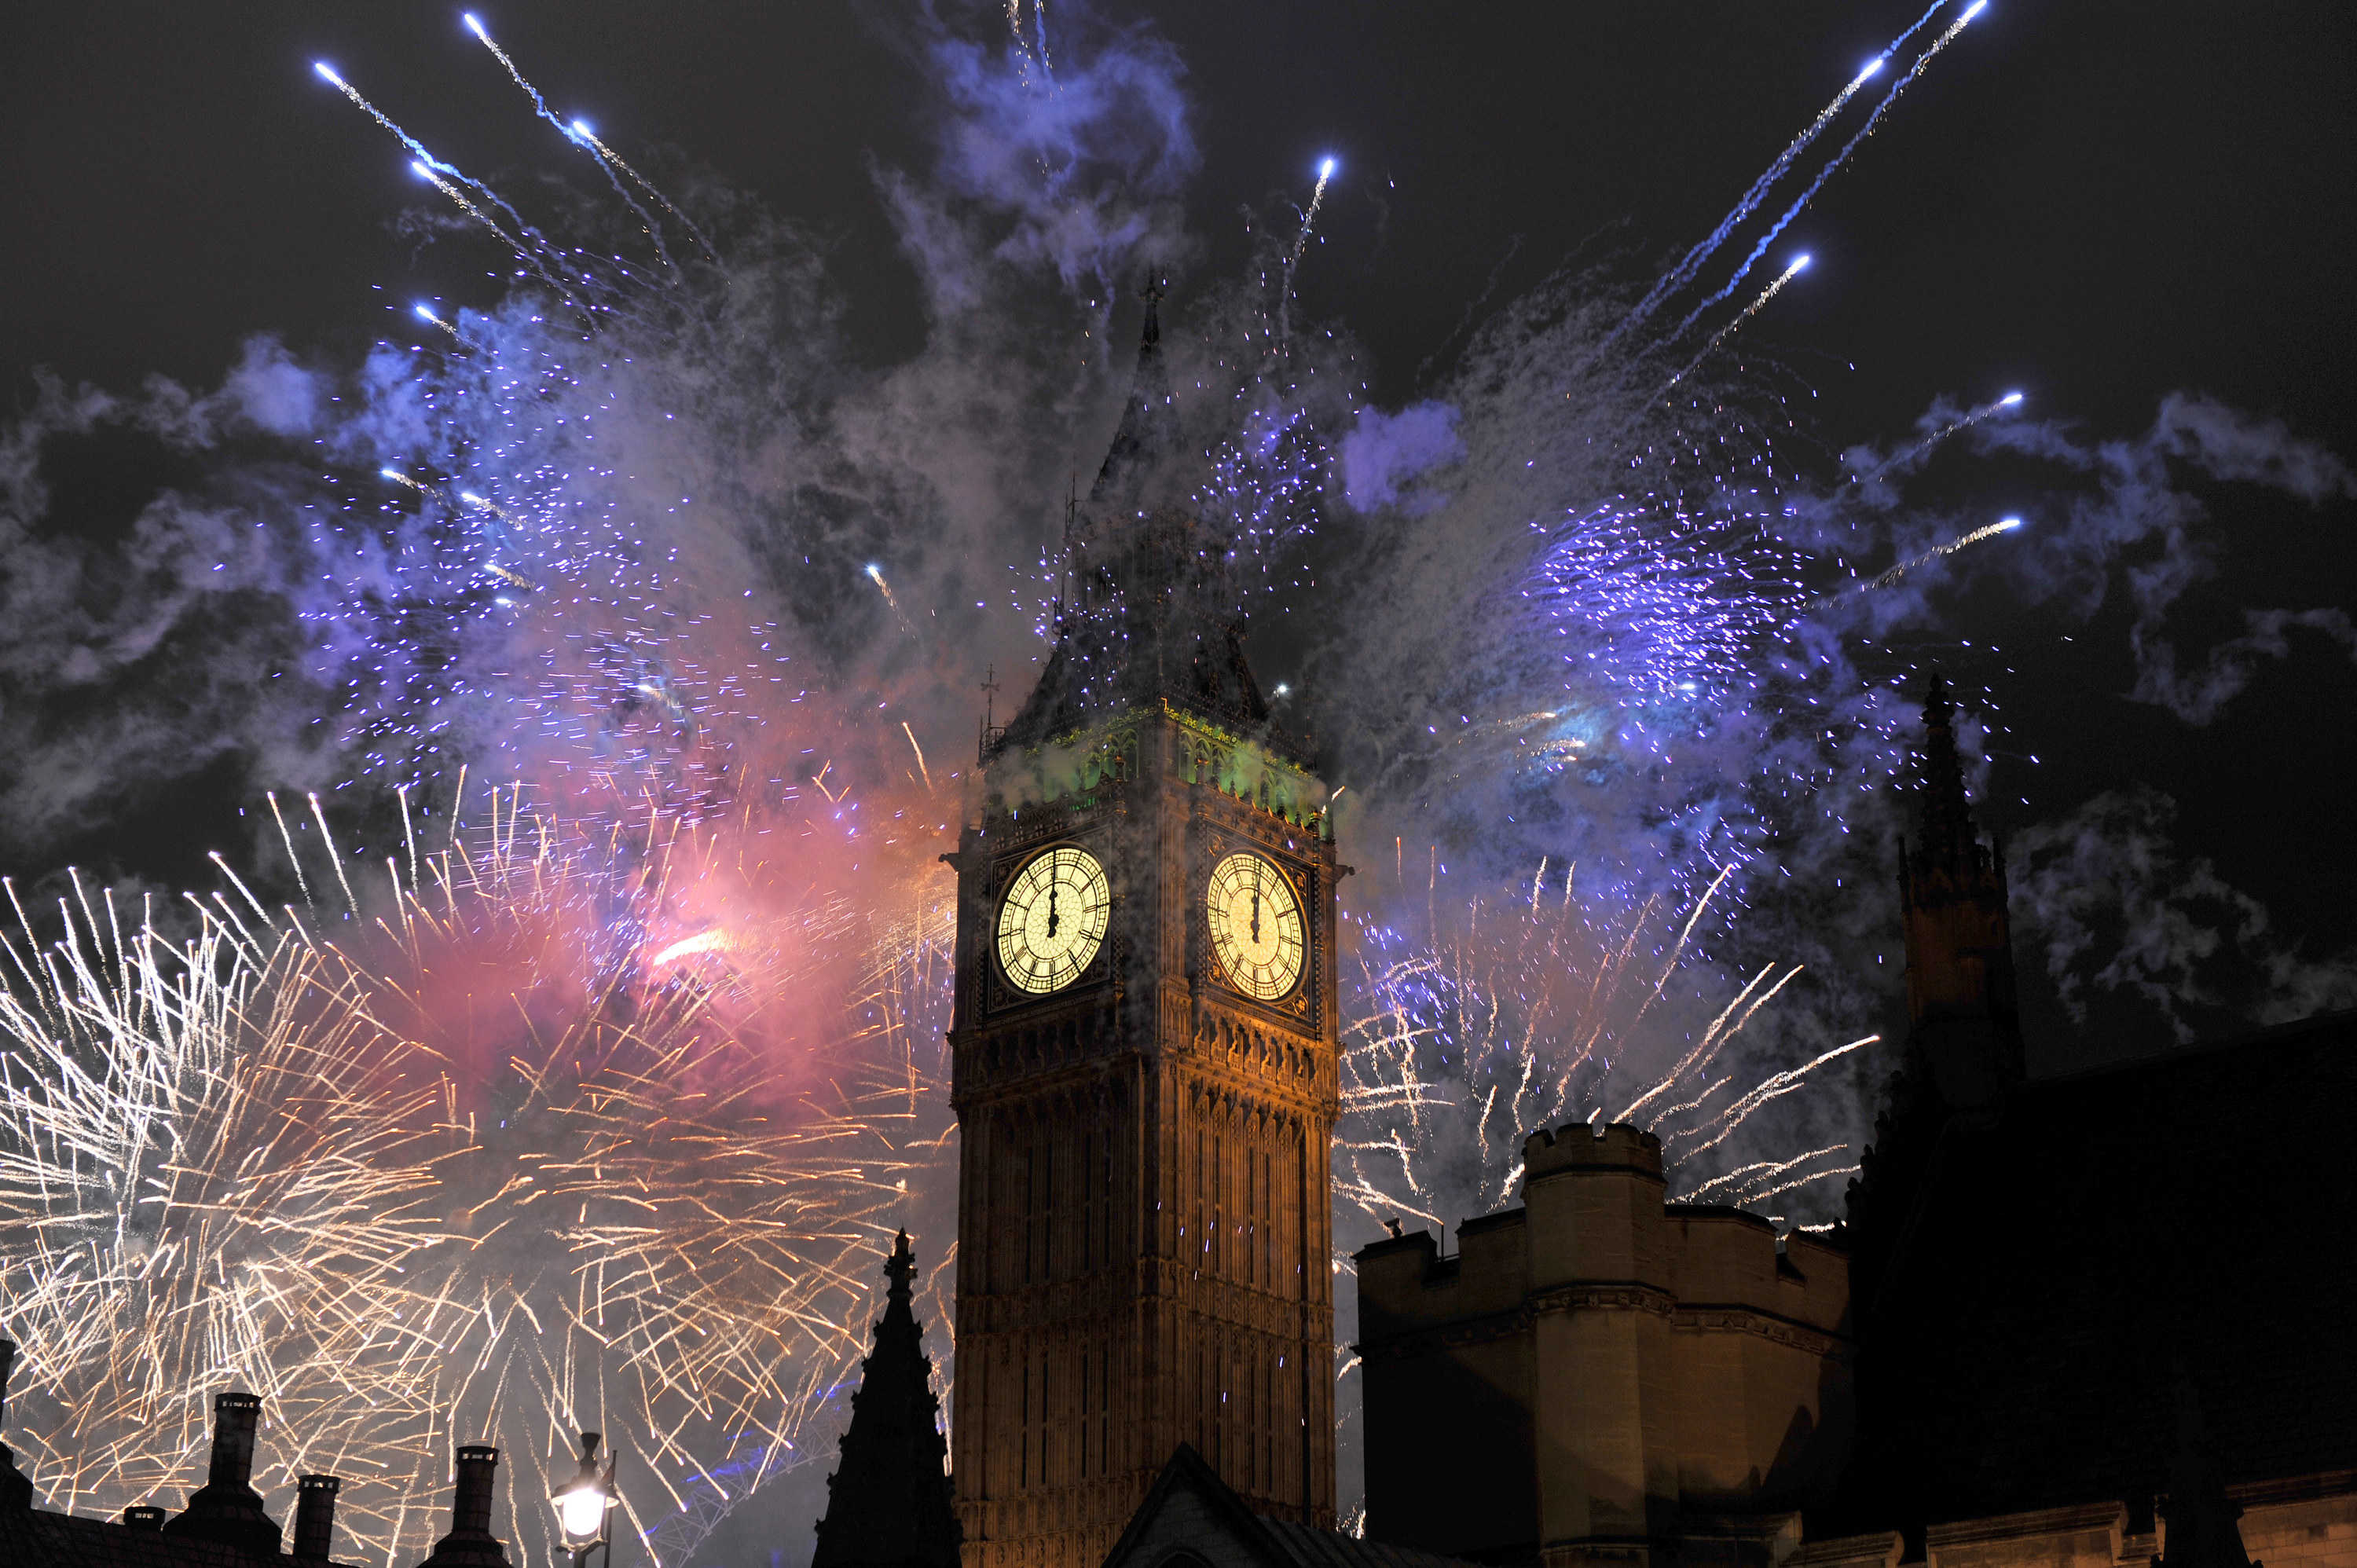 Fireworks going off behind Big Ben for Guy Fawkes Day